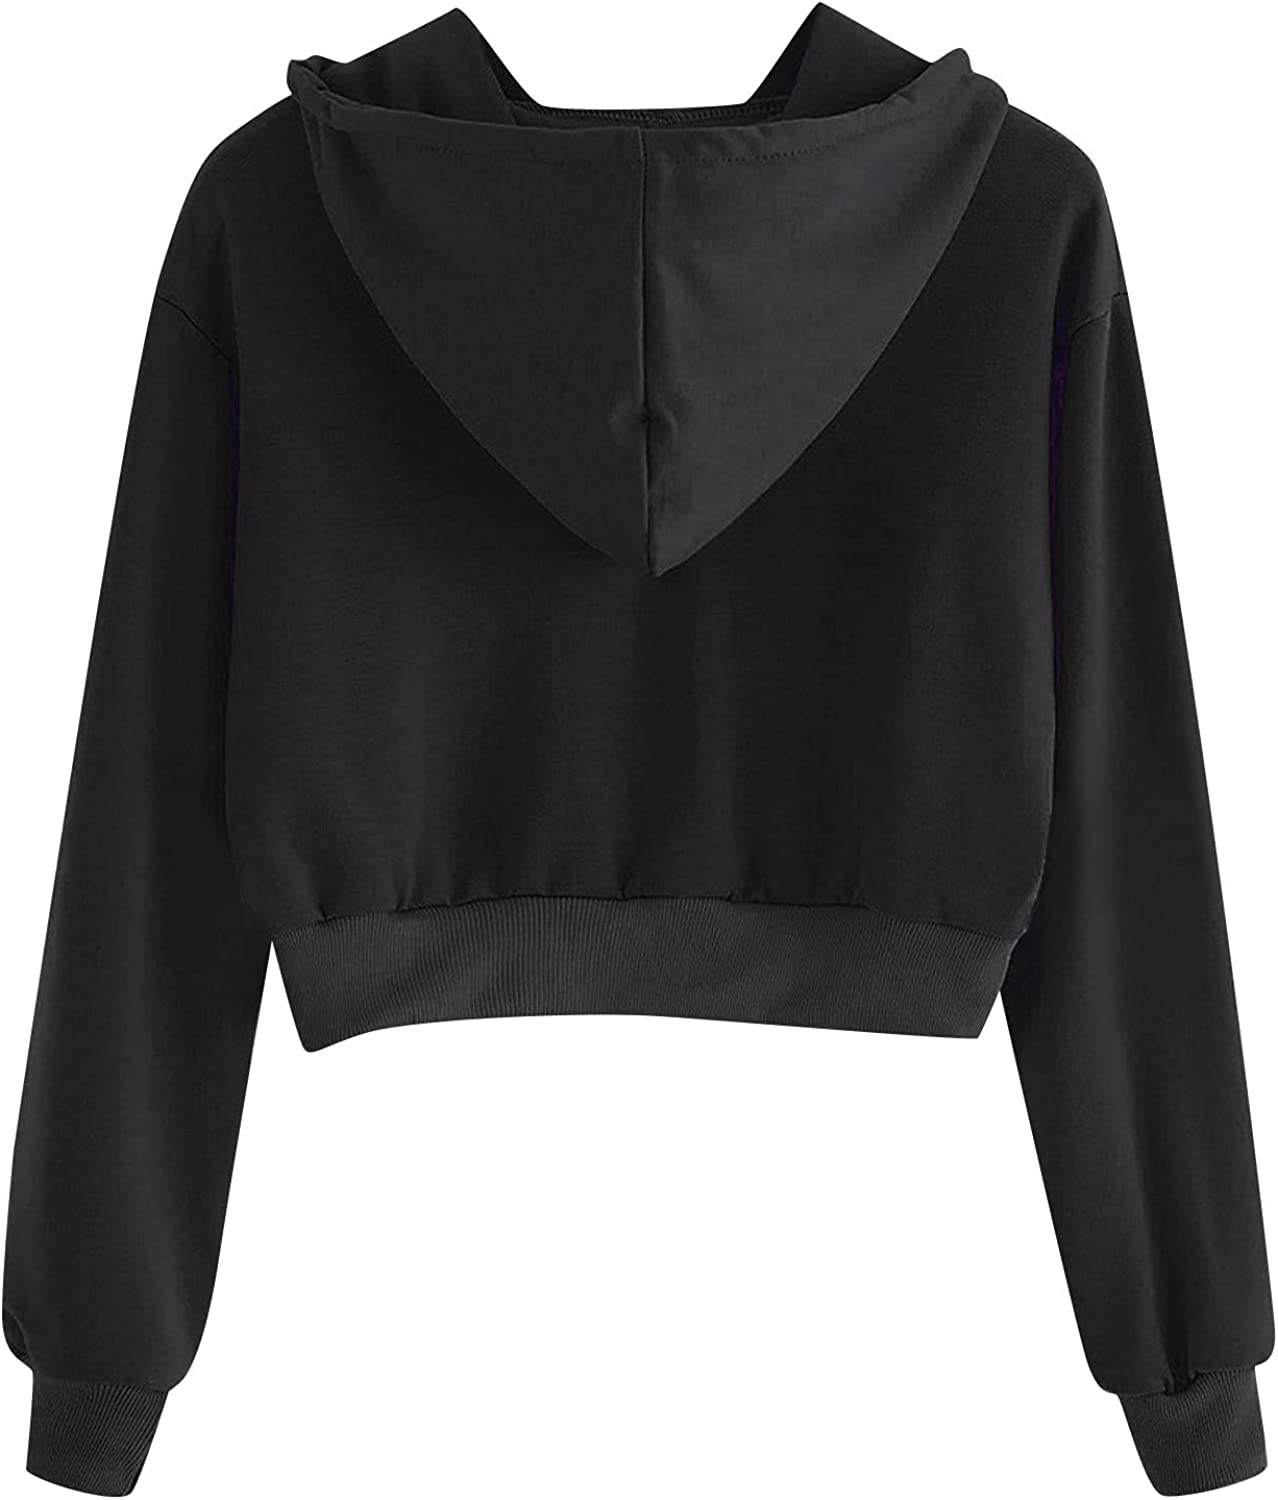 TAYBAGH Crop Hoodies for Women Trendy Casual Solid Long Sleeve Crop Tops Pullover Drawstring Sweatshirts for Teen Girls